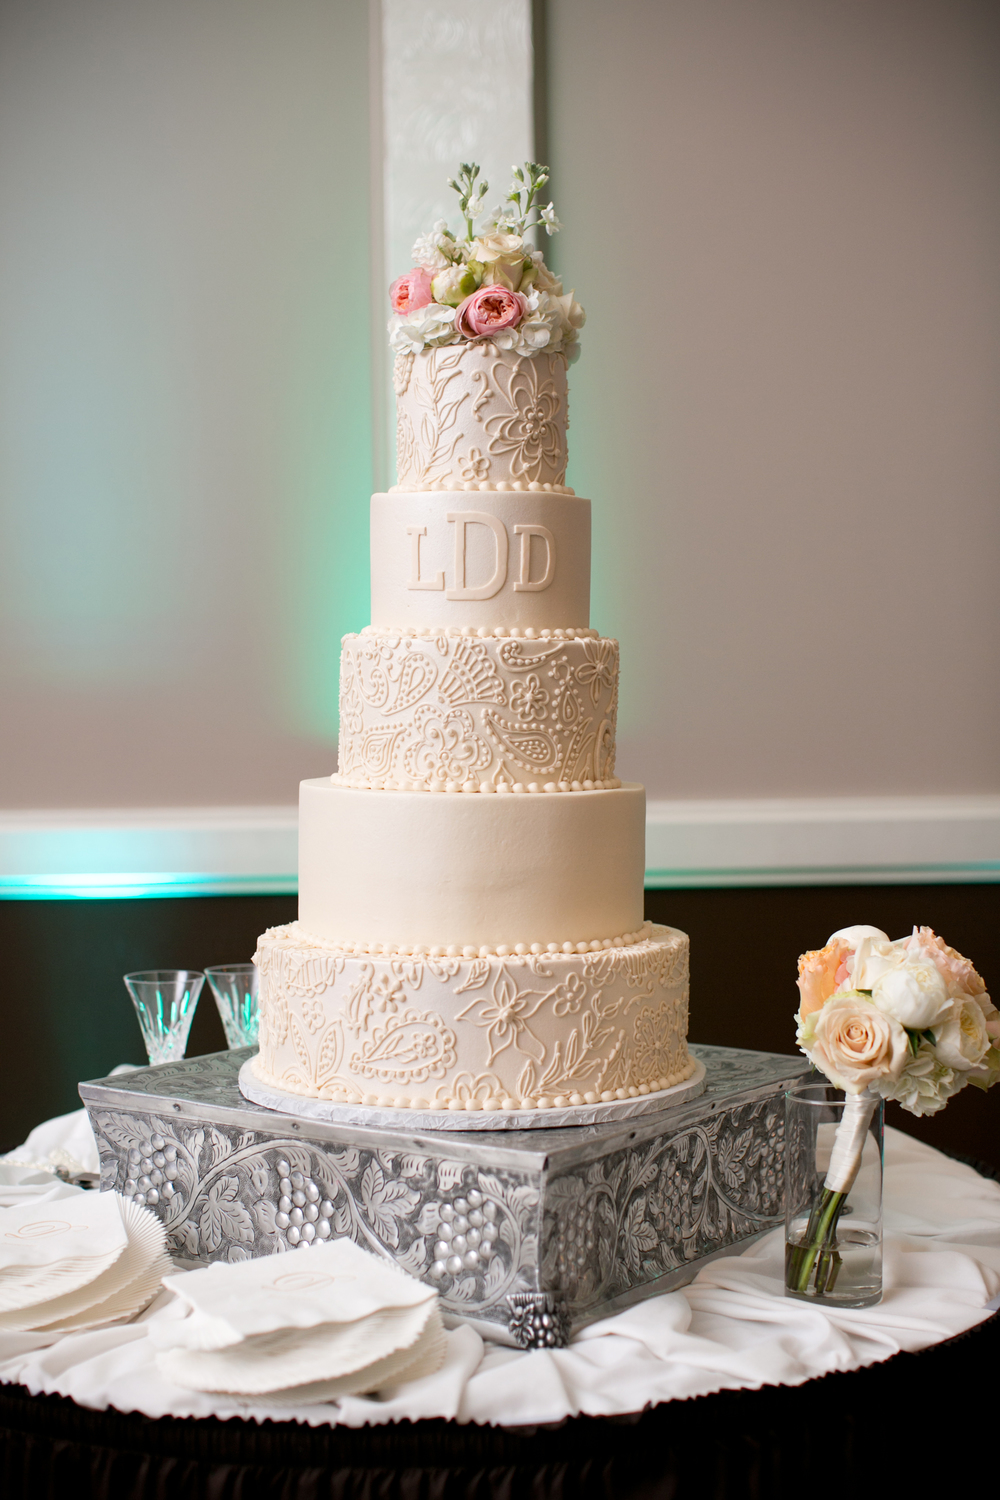 custom-wedding-cake-blush-lace-detail-monogram.jpg